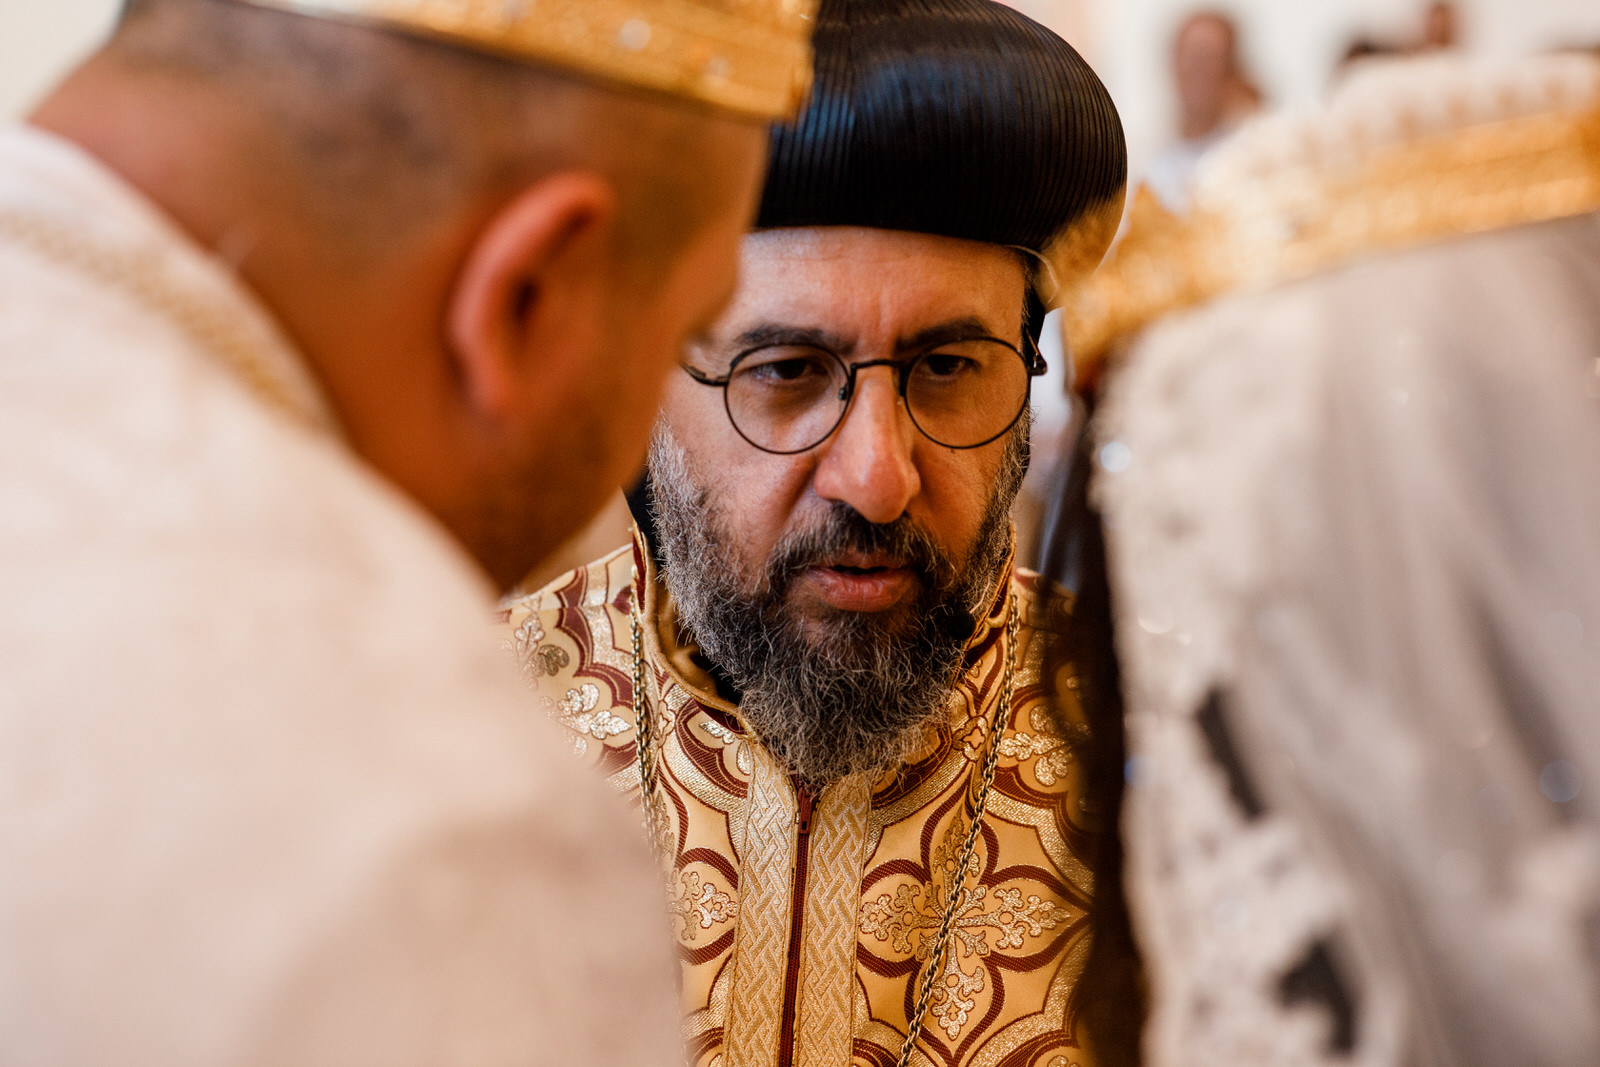 egyptian priest talking to bride and groom